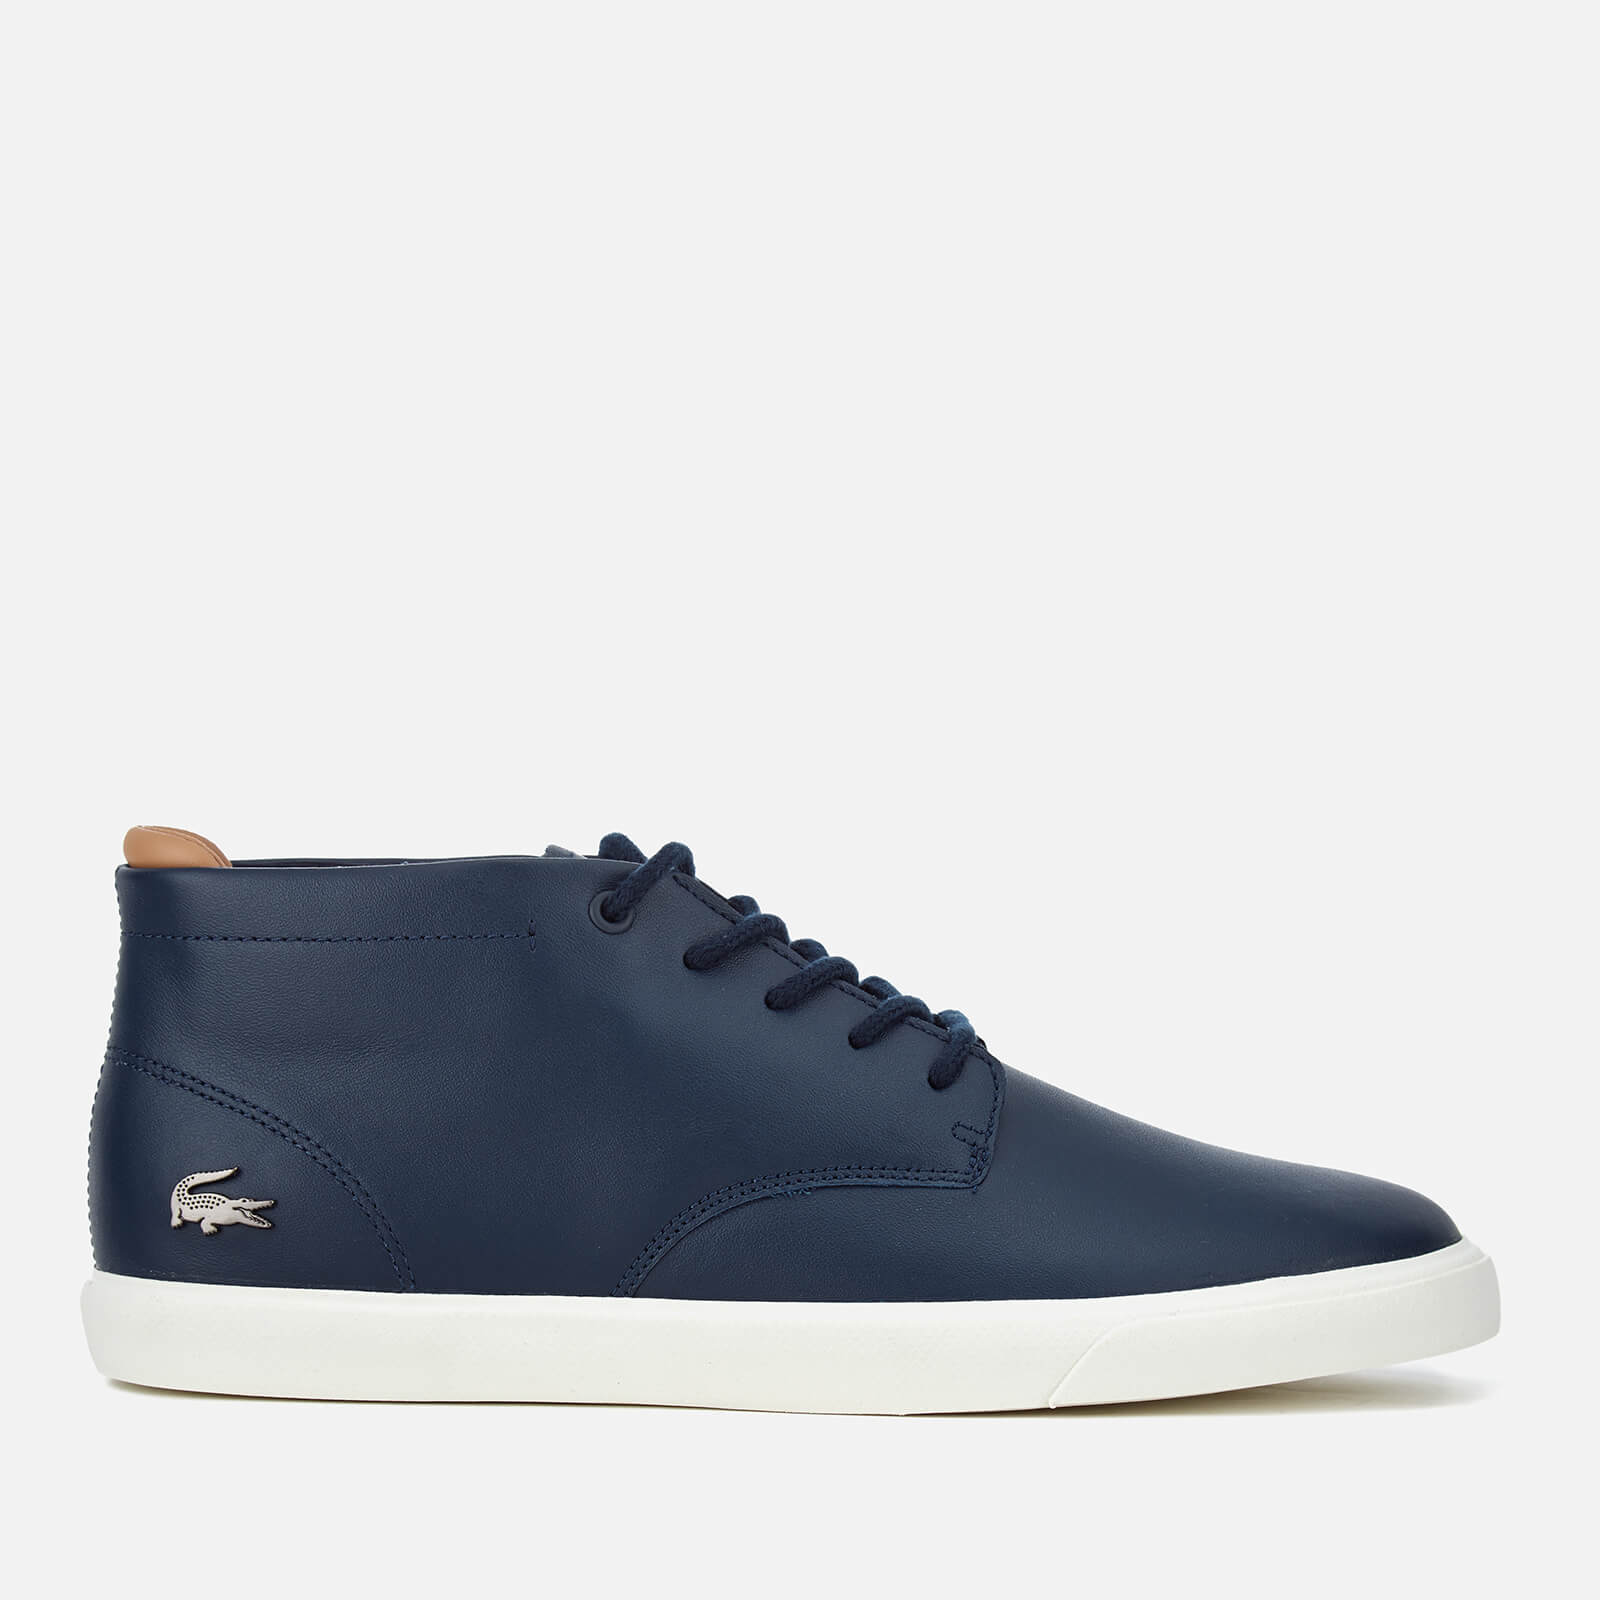 7c47a6f31606 Lacoste Men s Espere Chukka 317 1 Boots - Navy - Free UK Delivery over £50